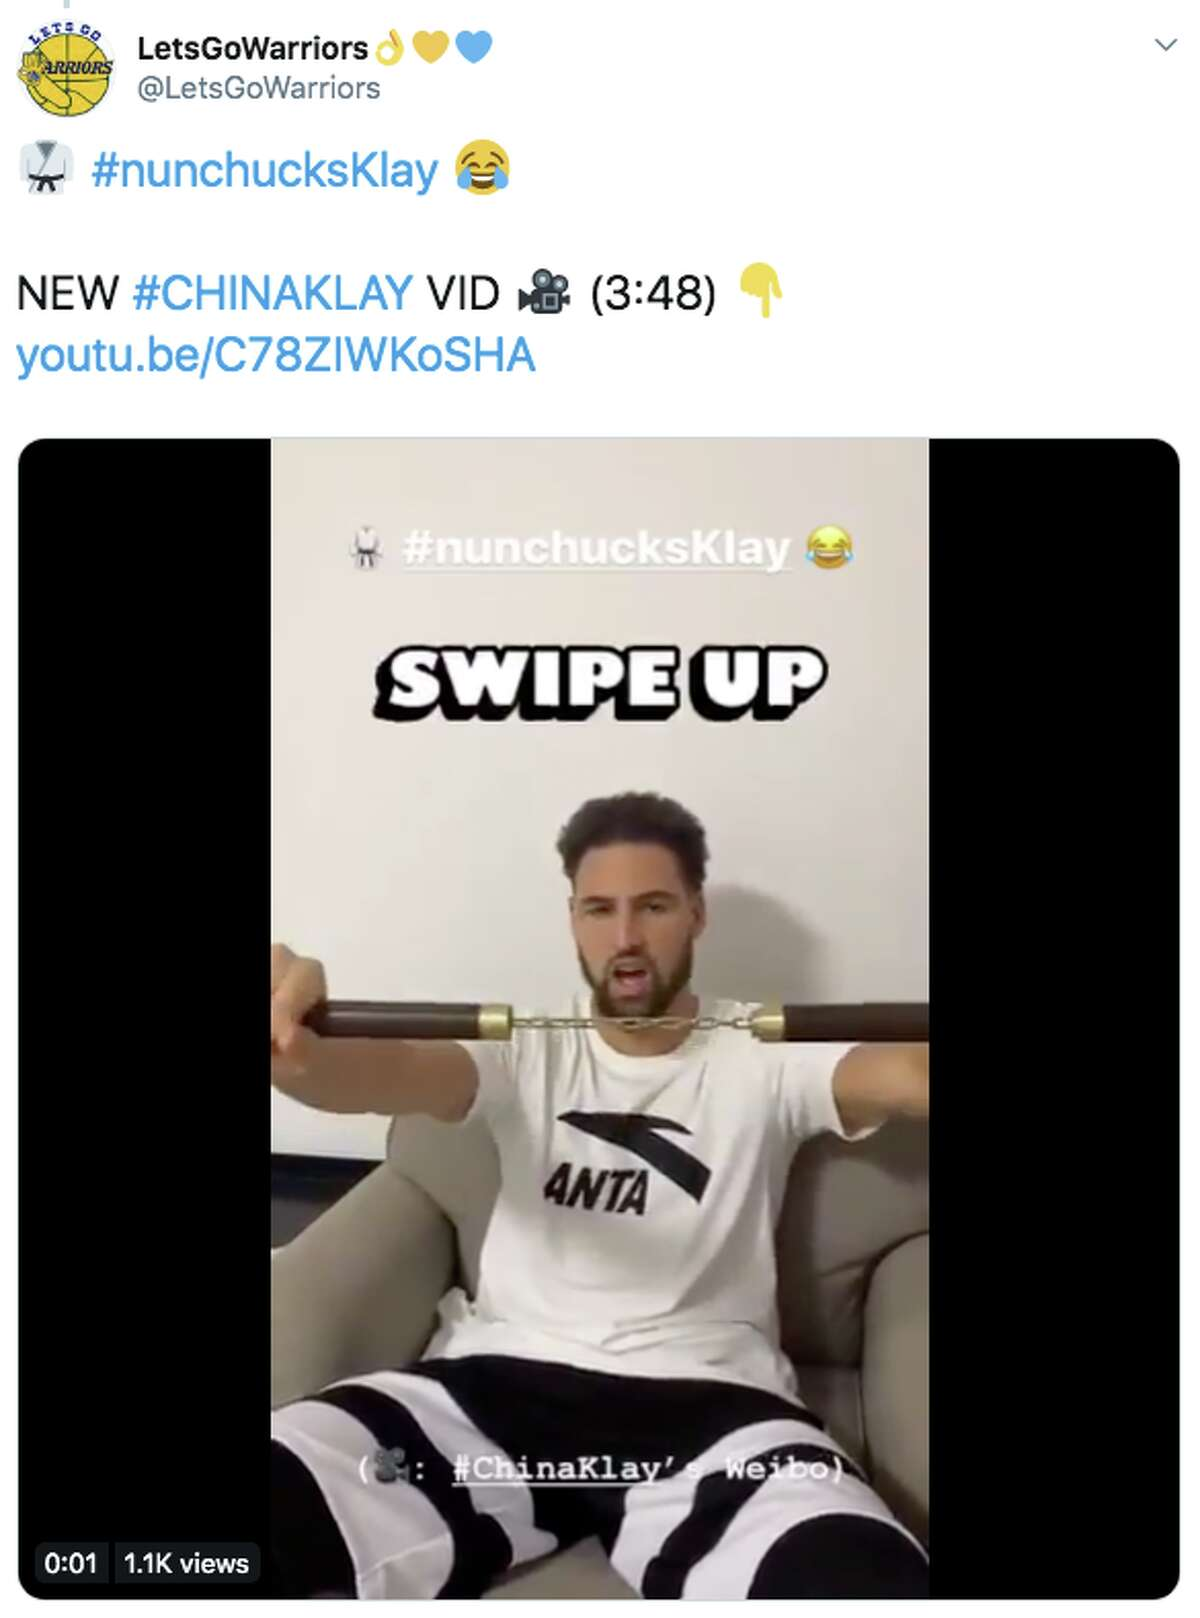 Golden State Warriors star Klay Thompson is in China to promote his new Anta shoes and, from the looks of it on social media, he's doing his level best to bring peak Klay to the country.